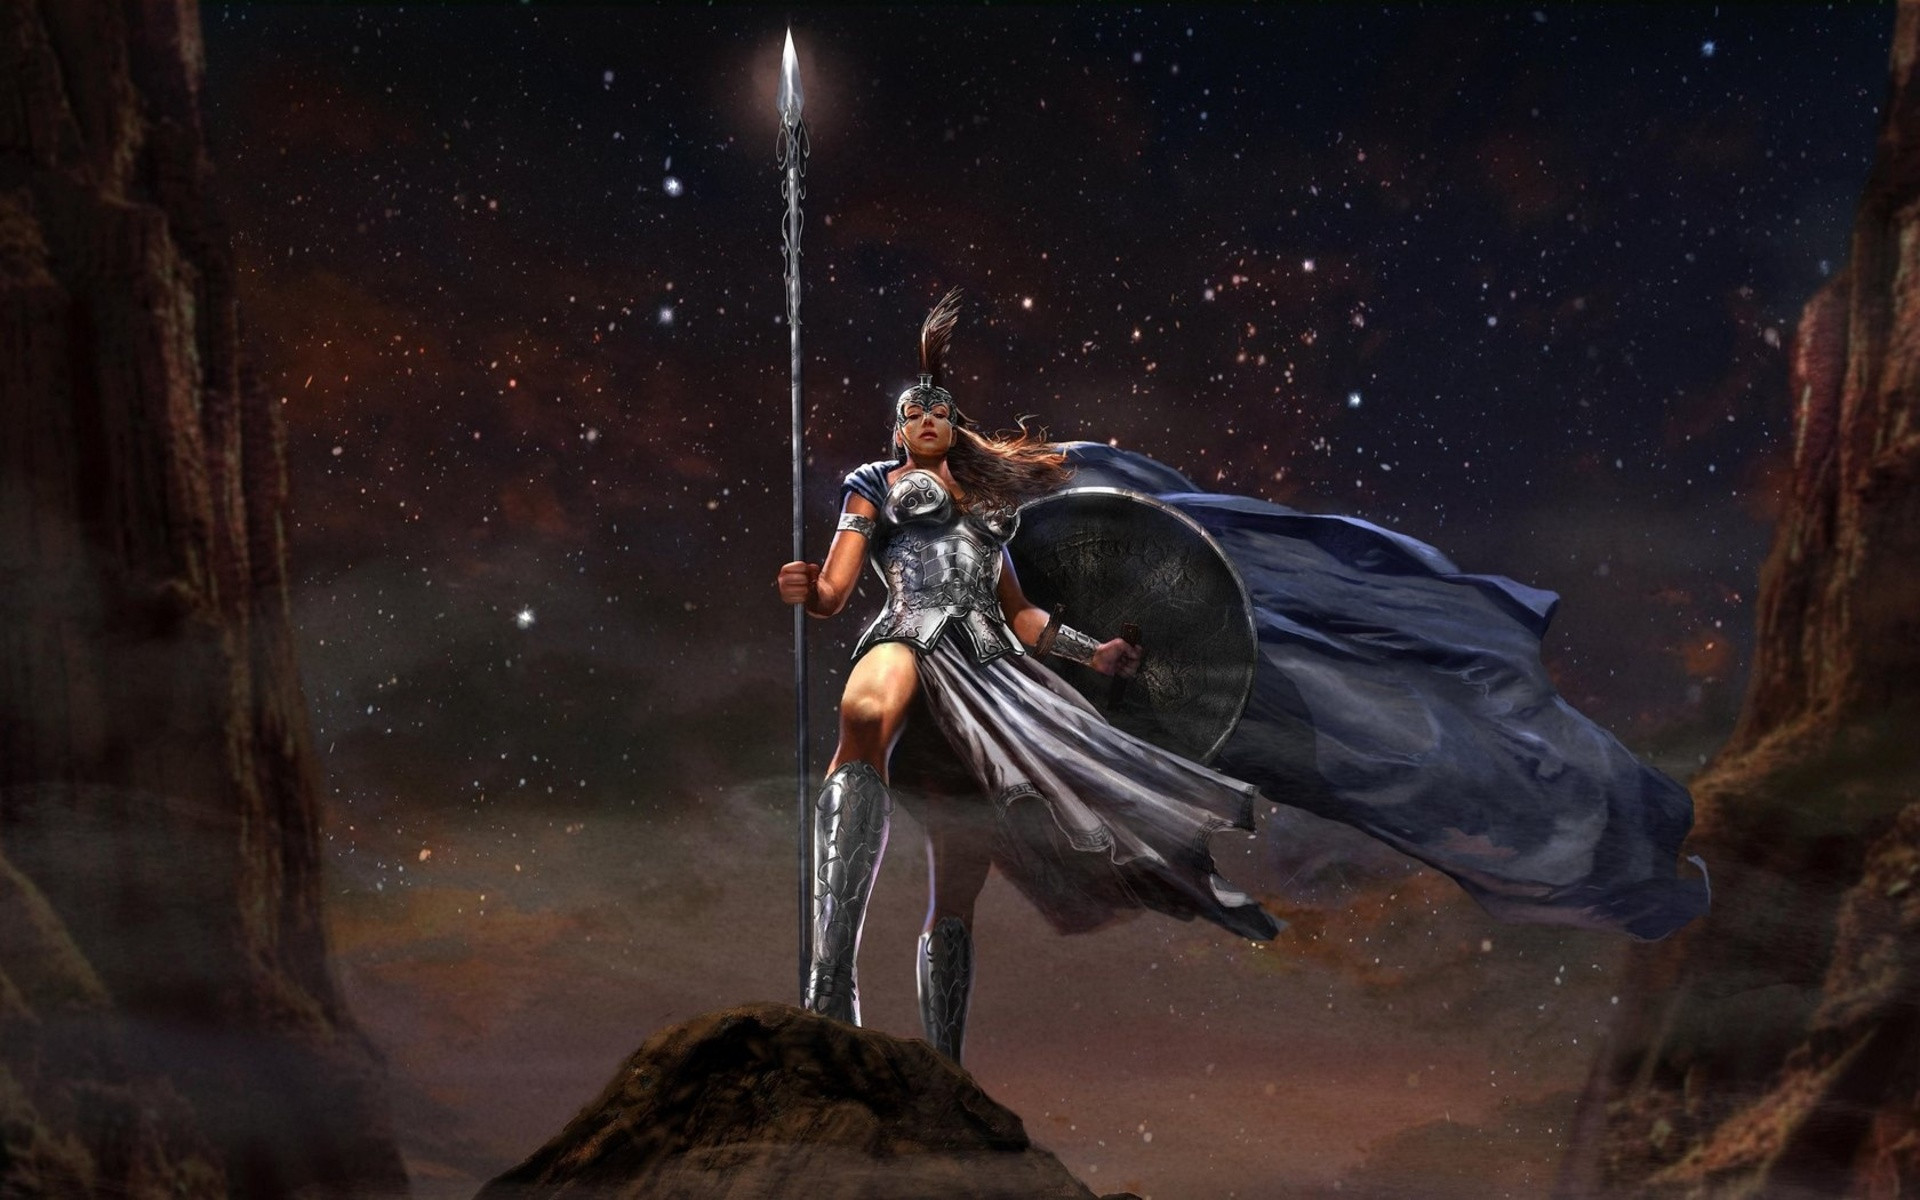 fantasy art warroir weapons spear armor knight women sexy babes stars